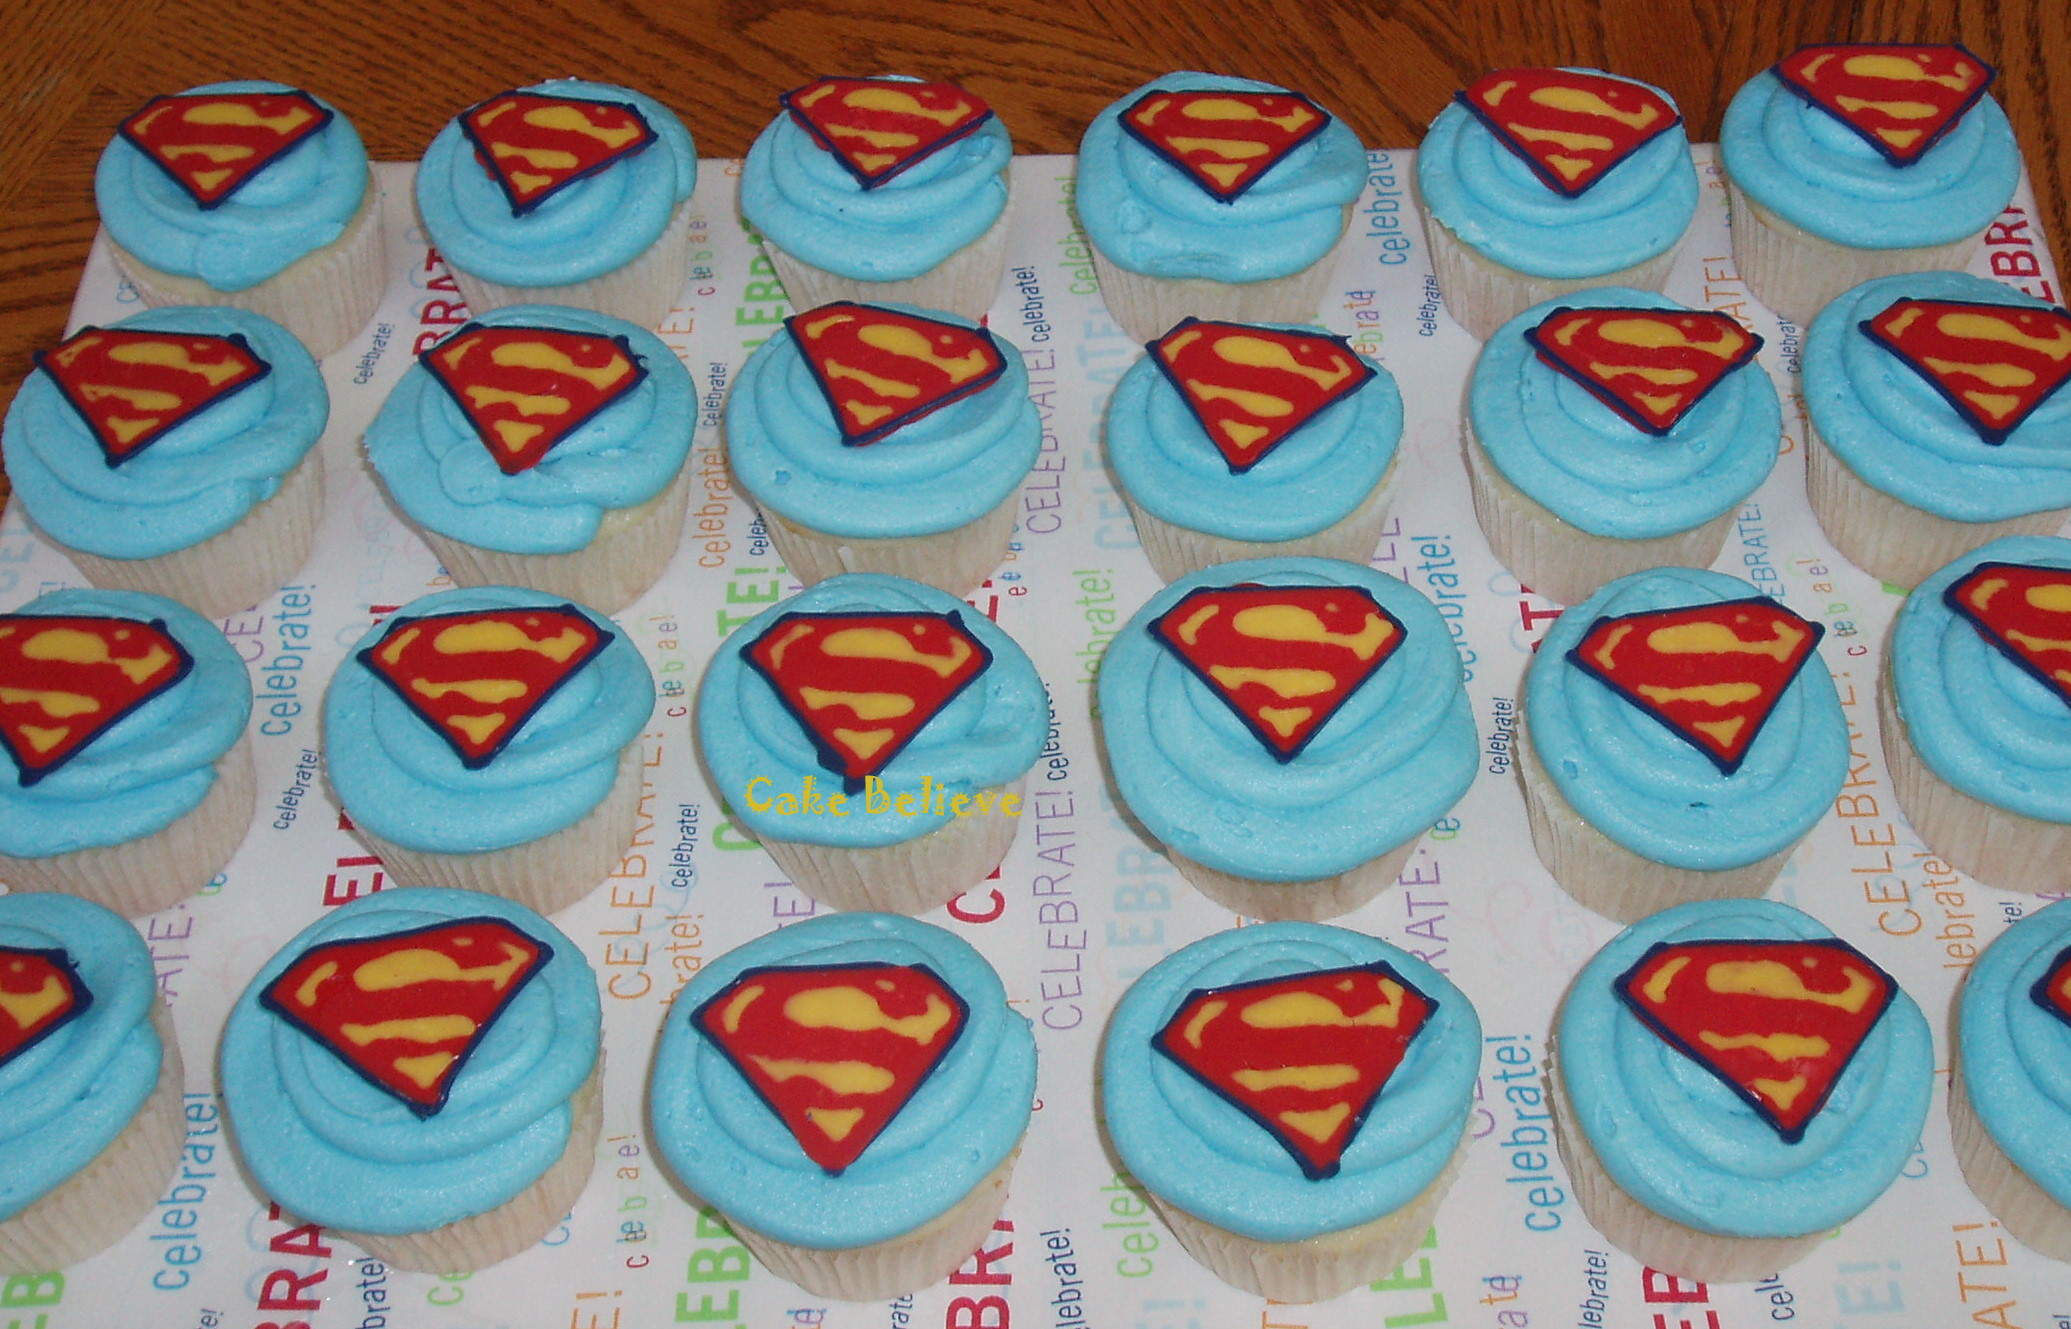 Superman Cupcakes Cakes and Cupcakes Mumbai